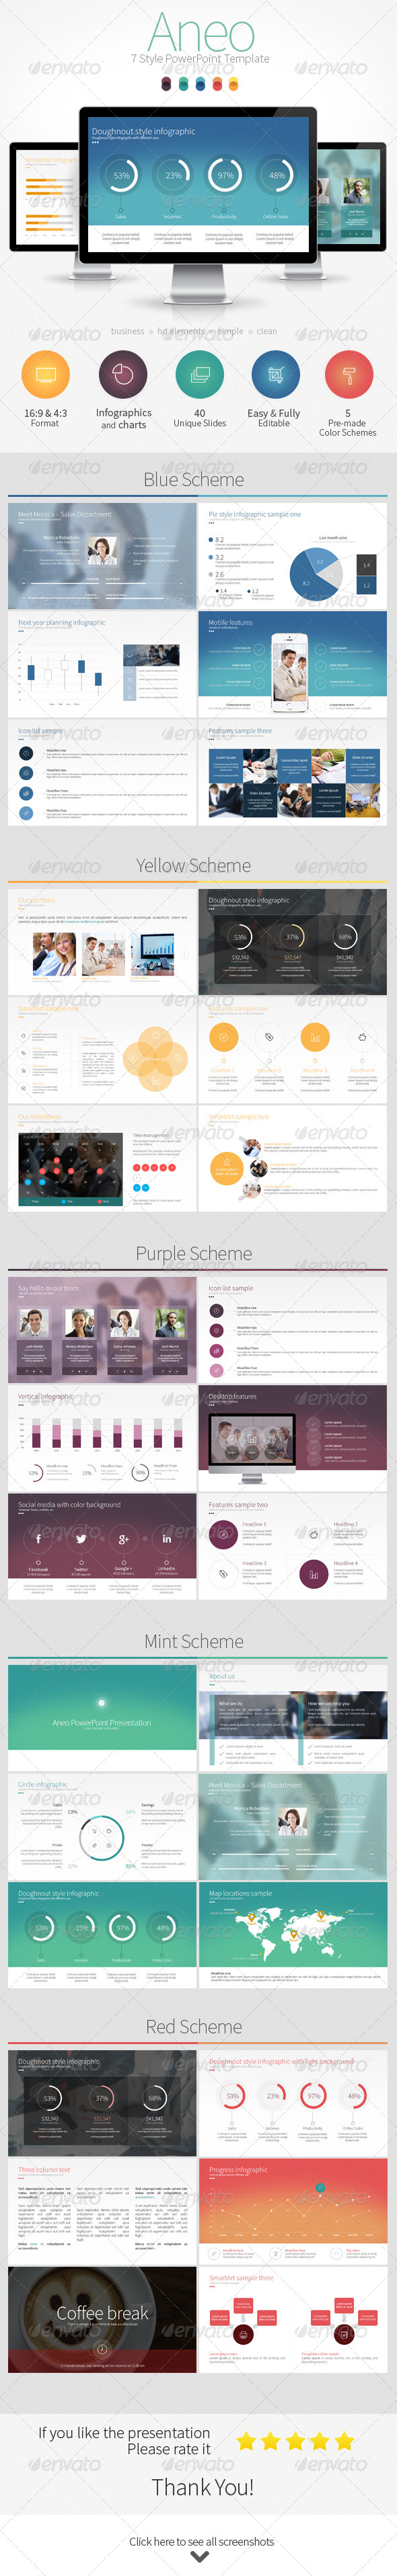 GraphicRiver Aneo 7 Style PowerPoint Template 8637237